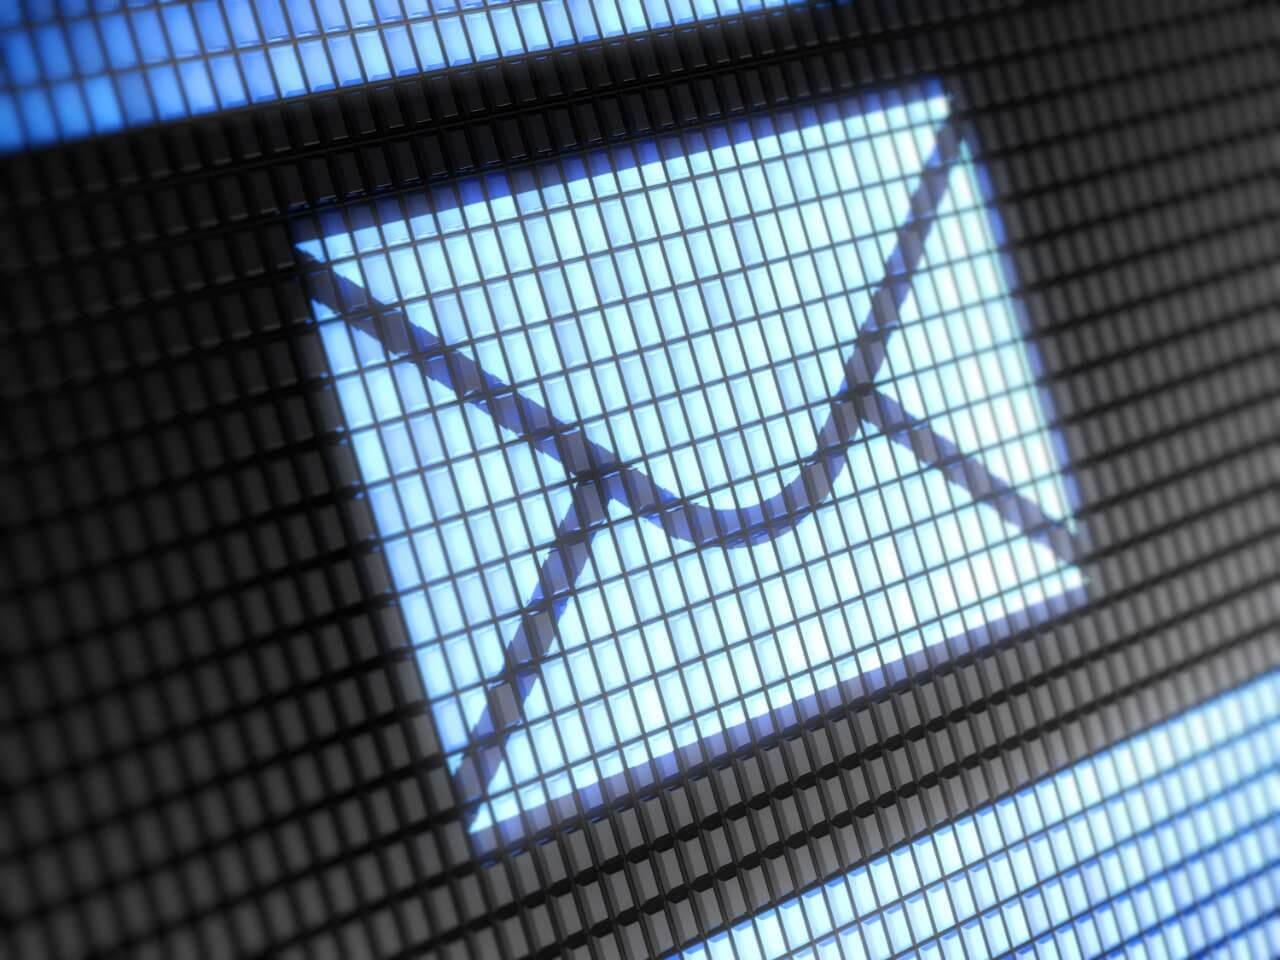 A screen with a large icon of an email